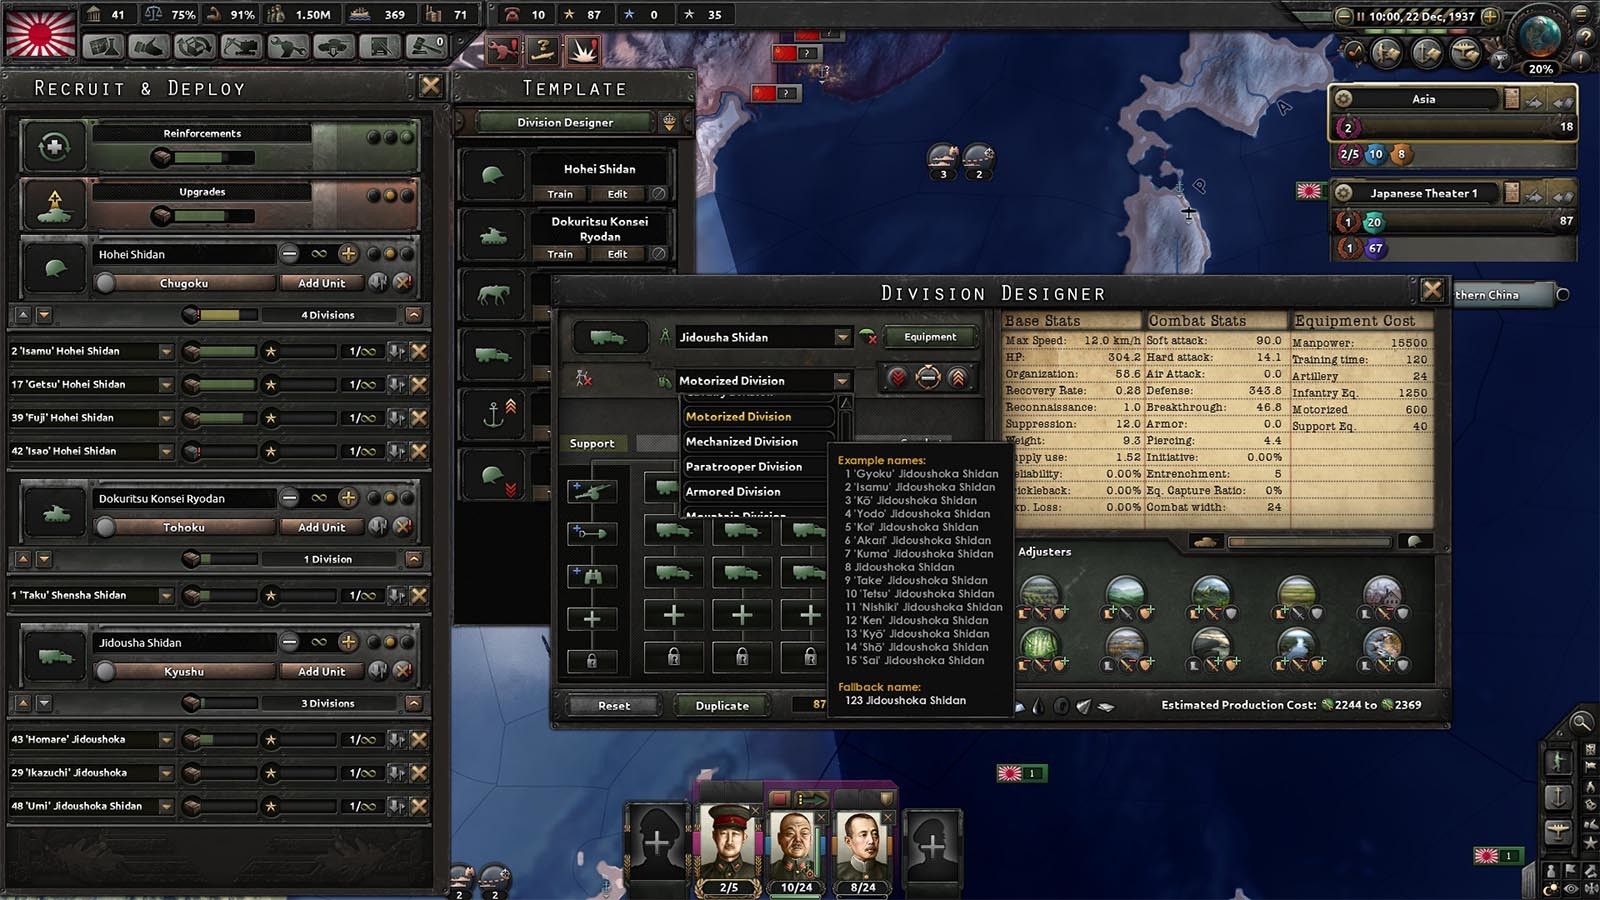 Hearts of Iron IV: Waking the Tiger [Steam CD Key] for PC, Mac and Linux -  Buy now